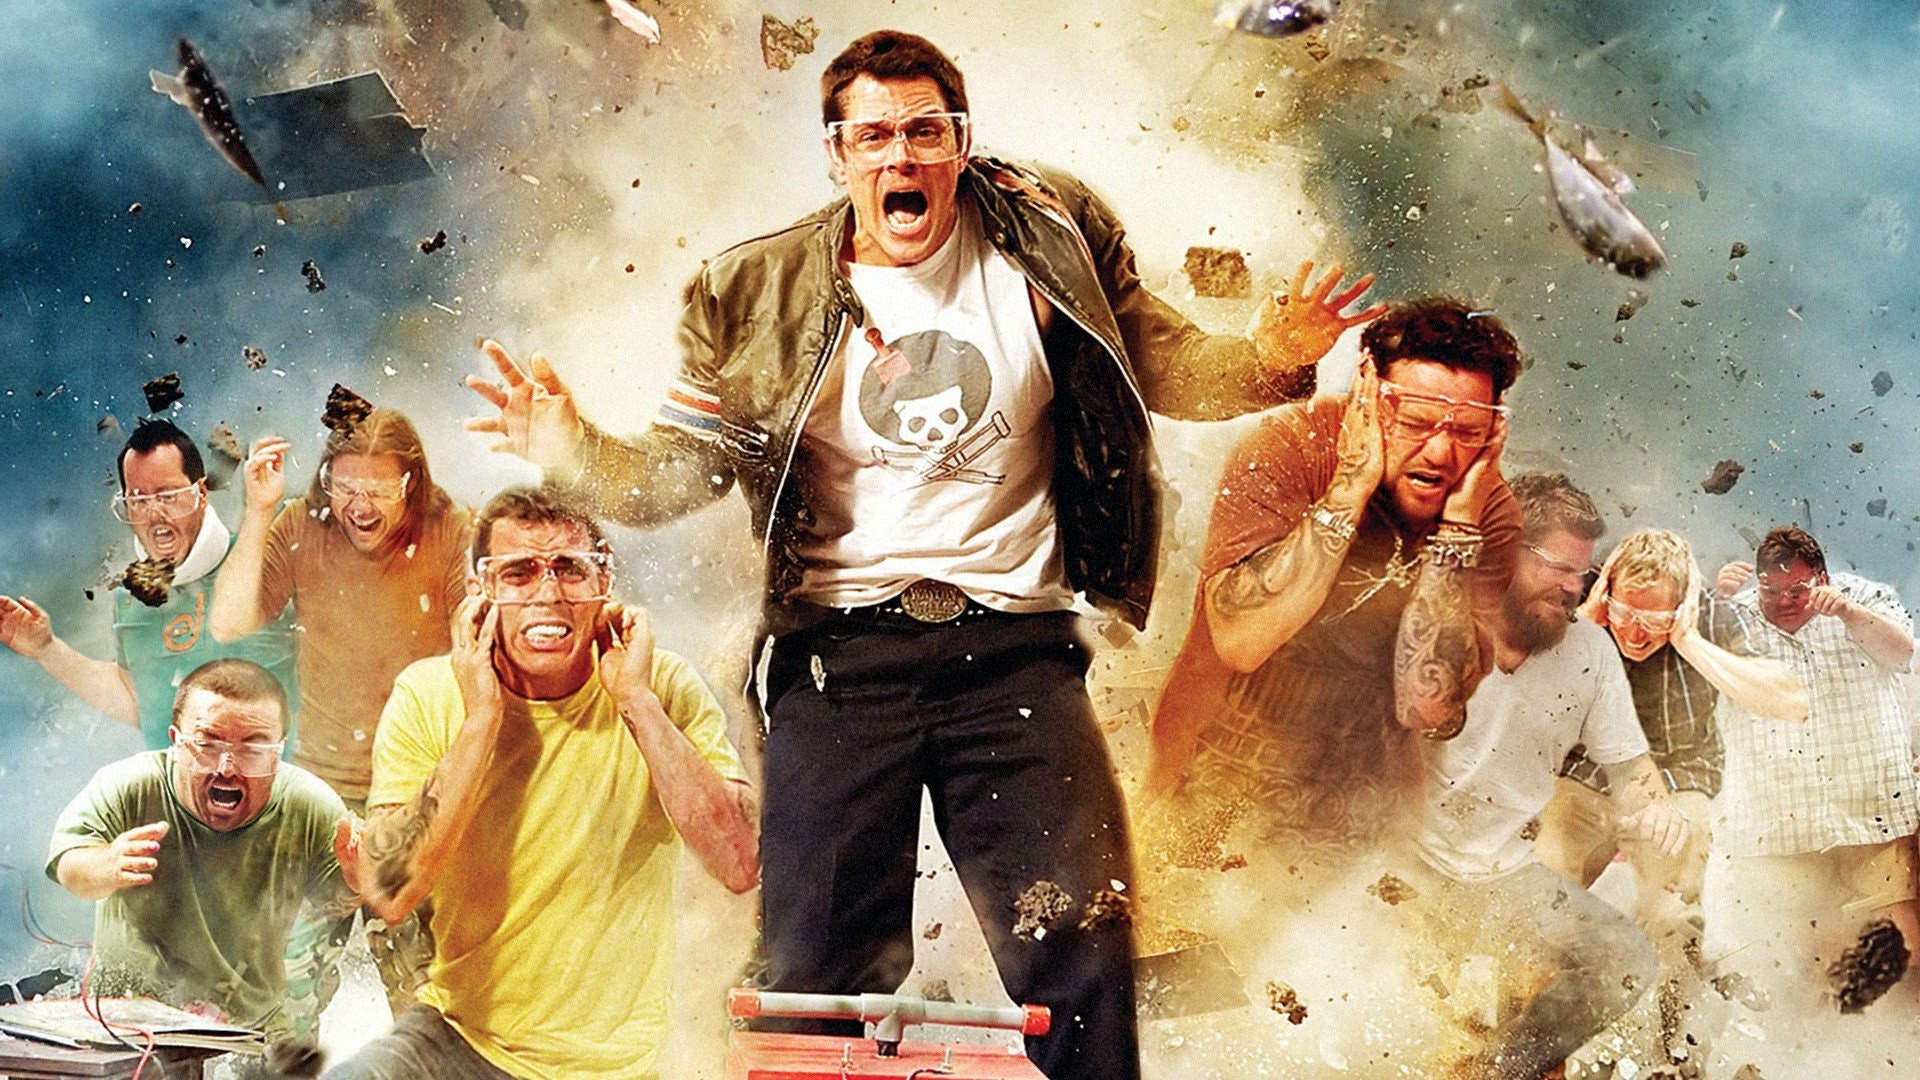 Jackass 3 movie soundtrack